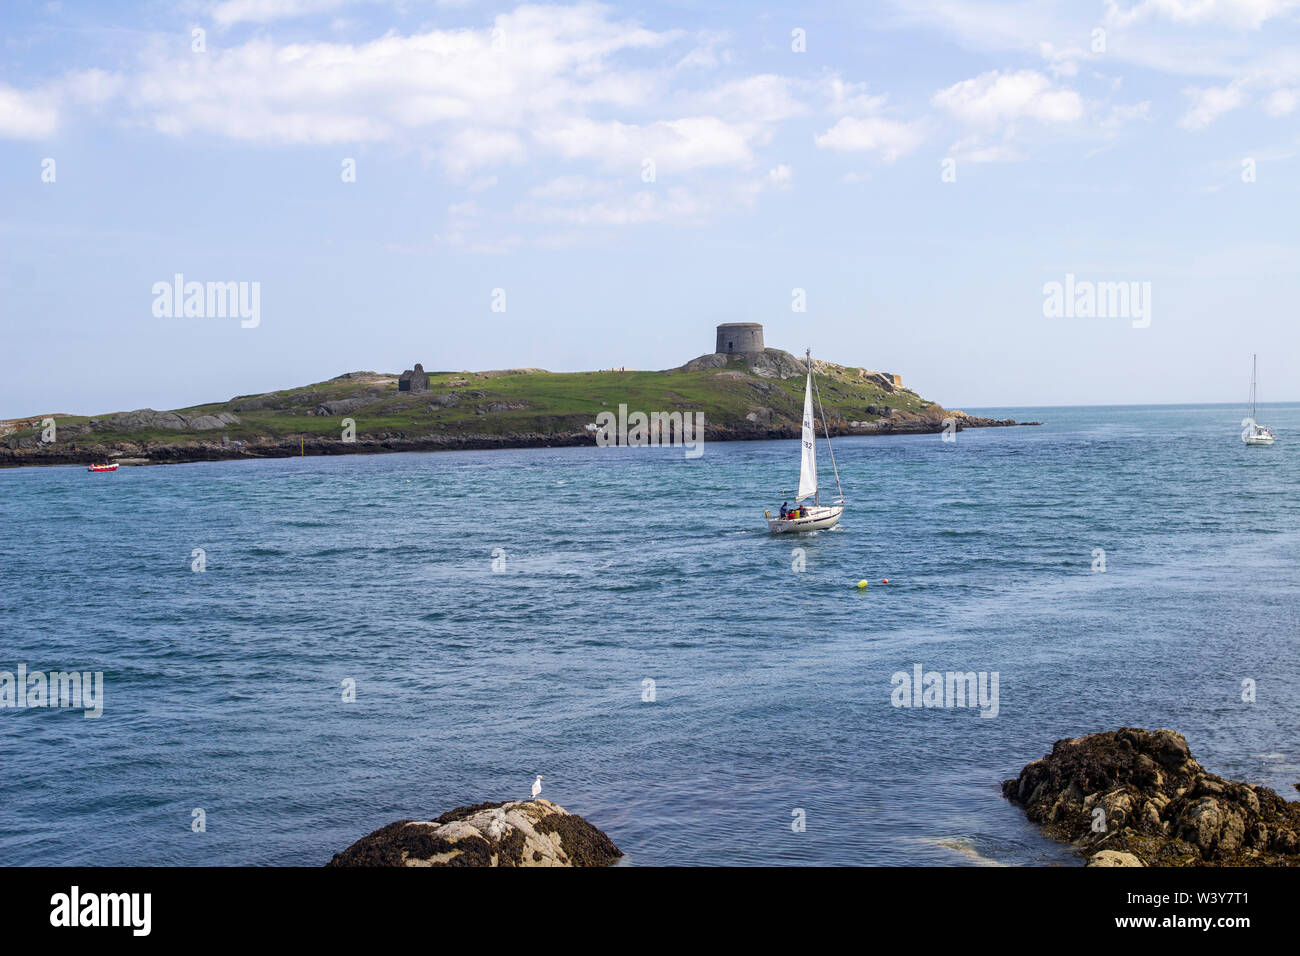 A yacht navigating the waters between Dalkey Island and Coliemore Harbour, Dalkey, Ireland.  There is an old Martello Tower on the island. - Stock Image